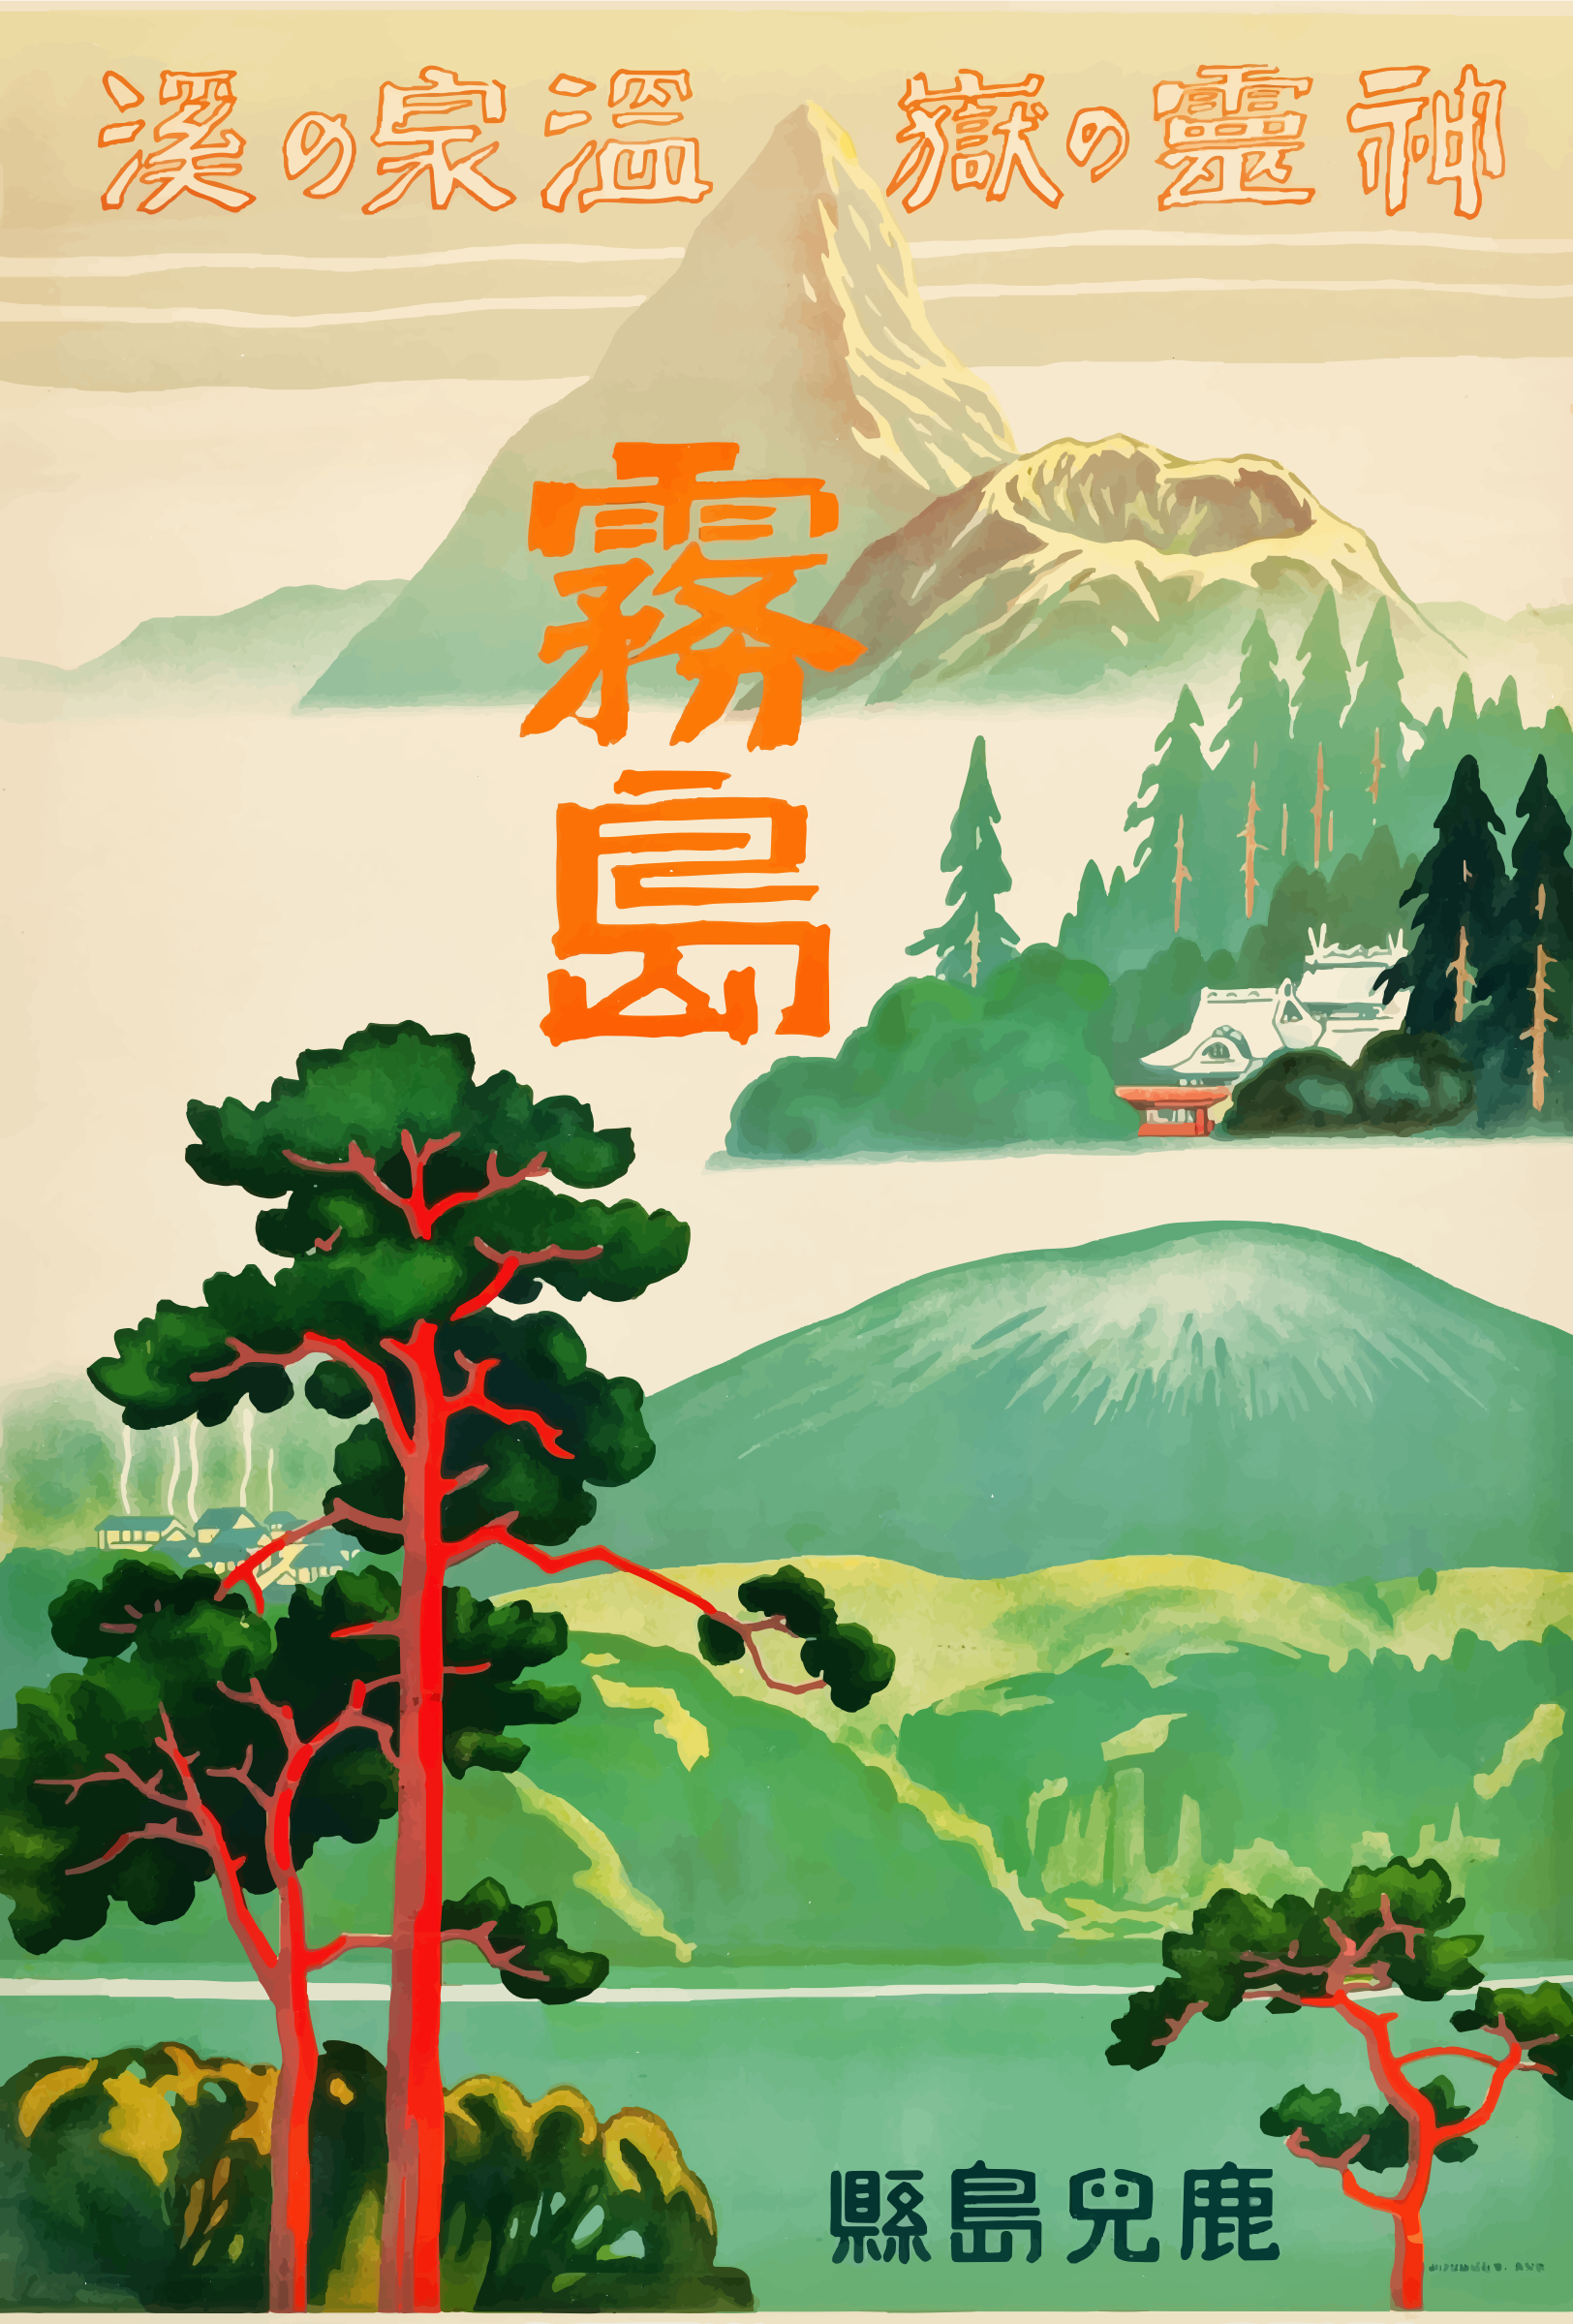 Vintage Travel Poster Japan 1930s 2 by GDJ